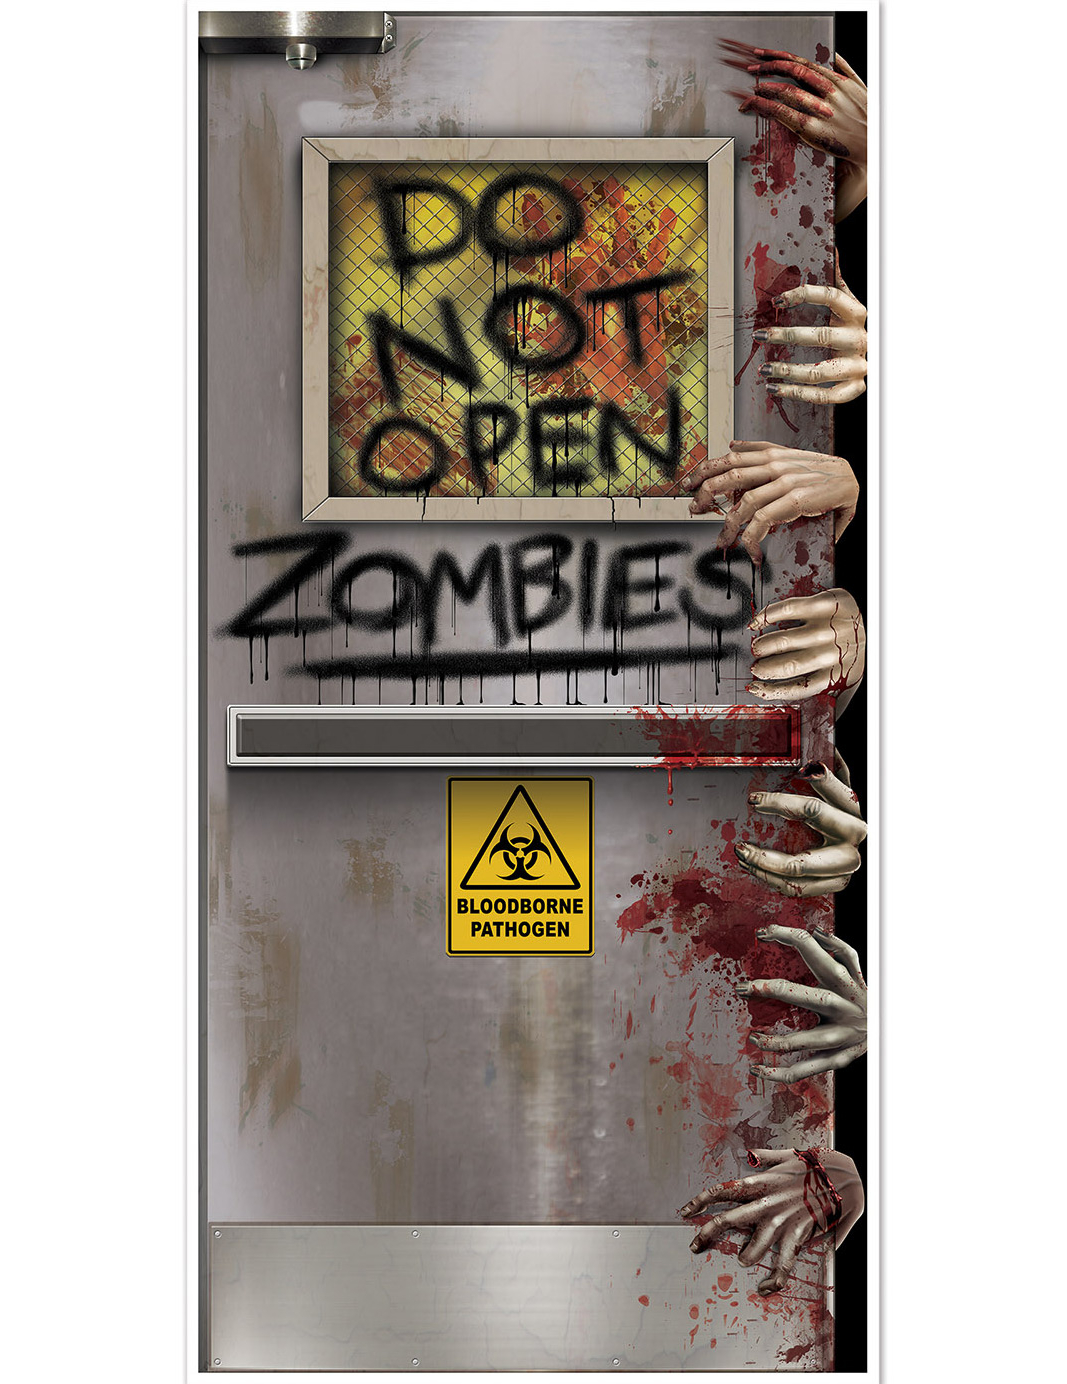 d coration de porte laboratoire zombie halloween d coration anniversaire et f tes th me sur. Black Bedroom Furniture Sets. Home Design Ideas